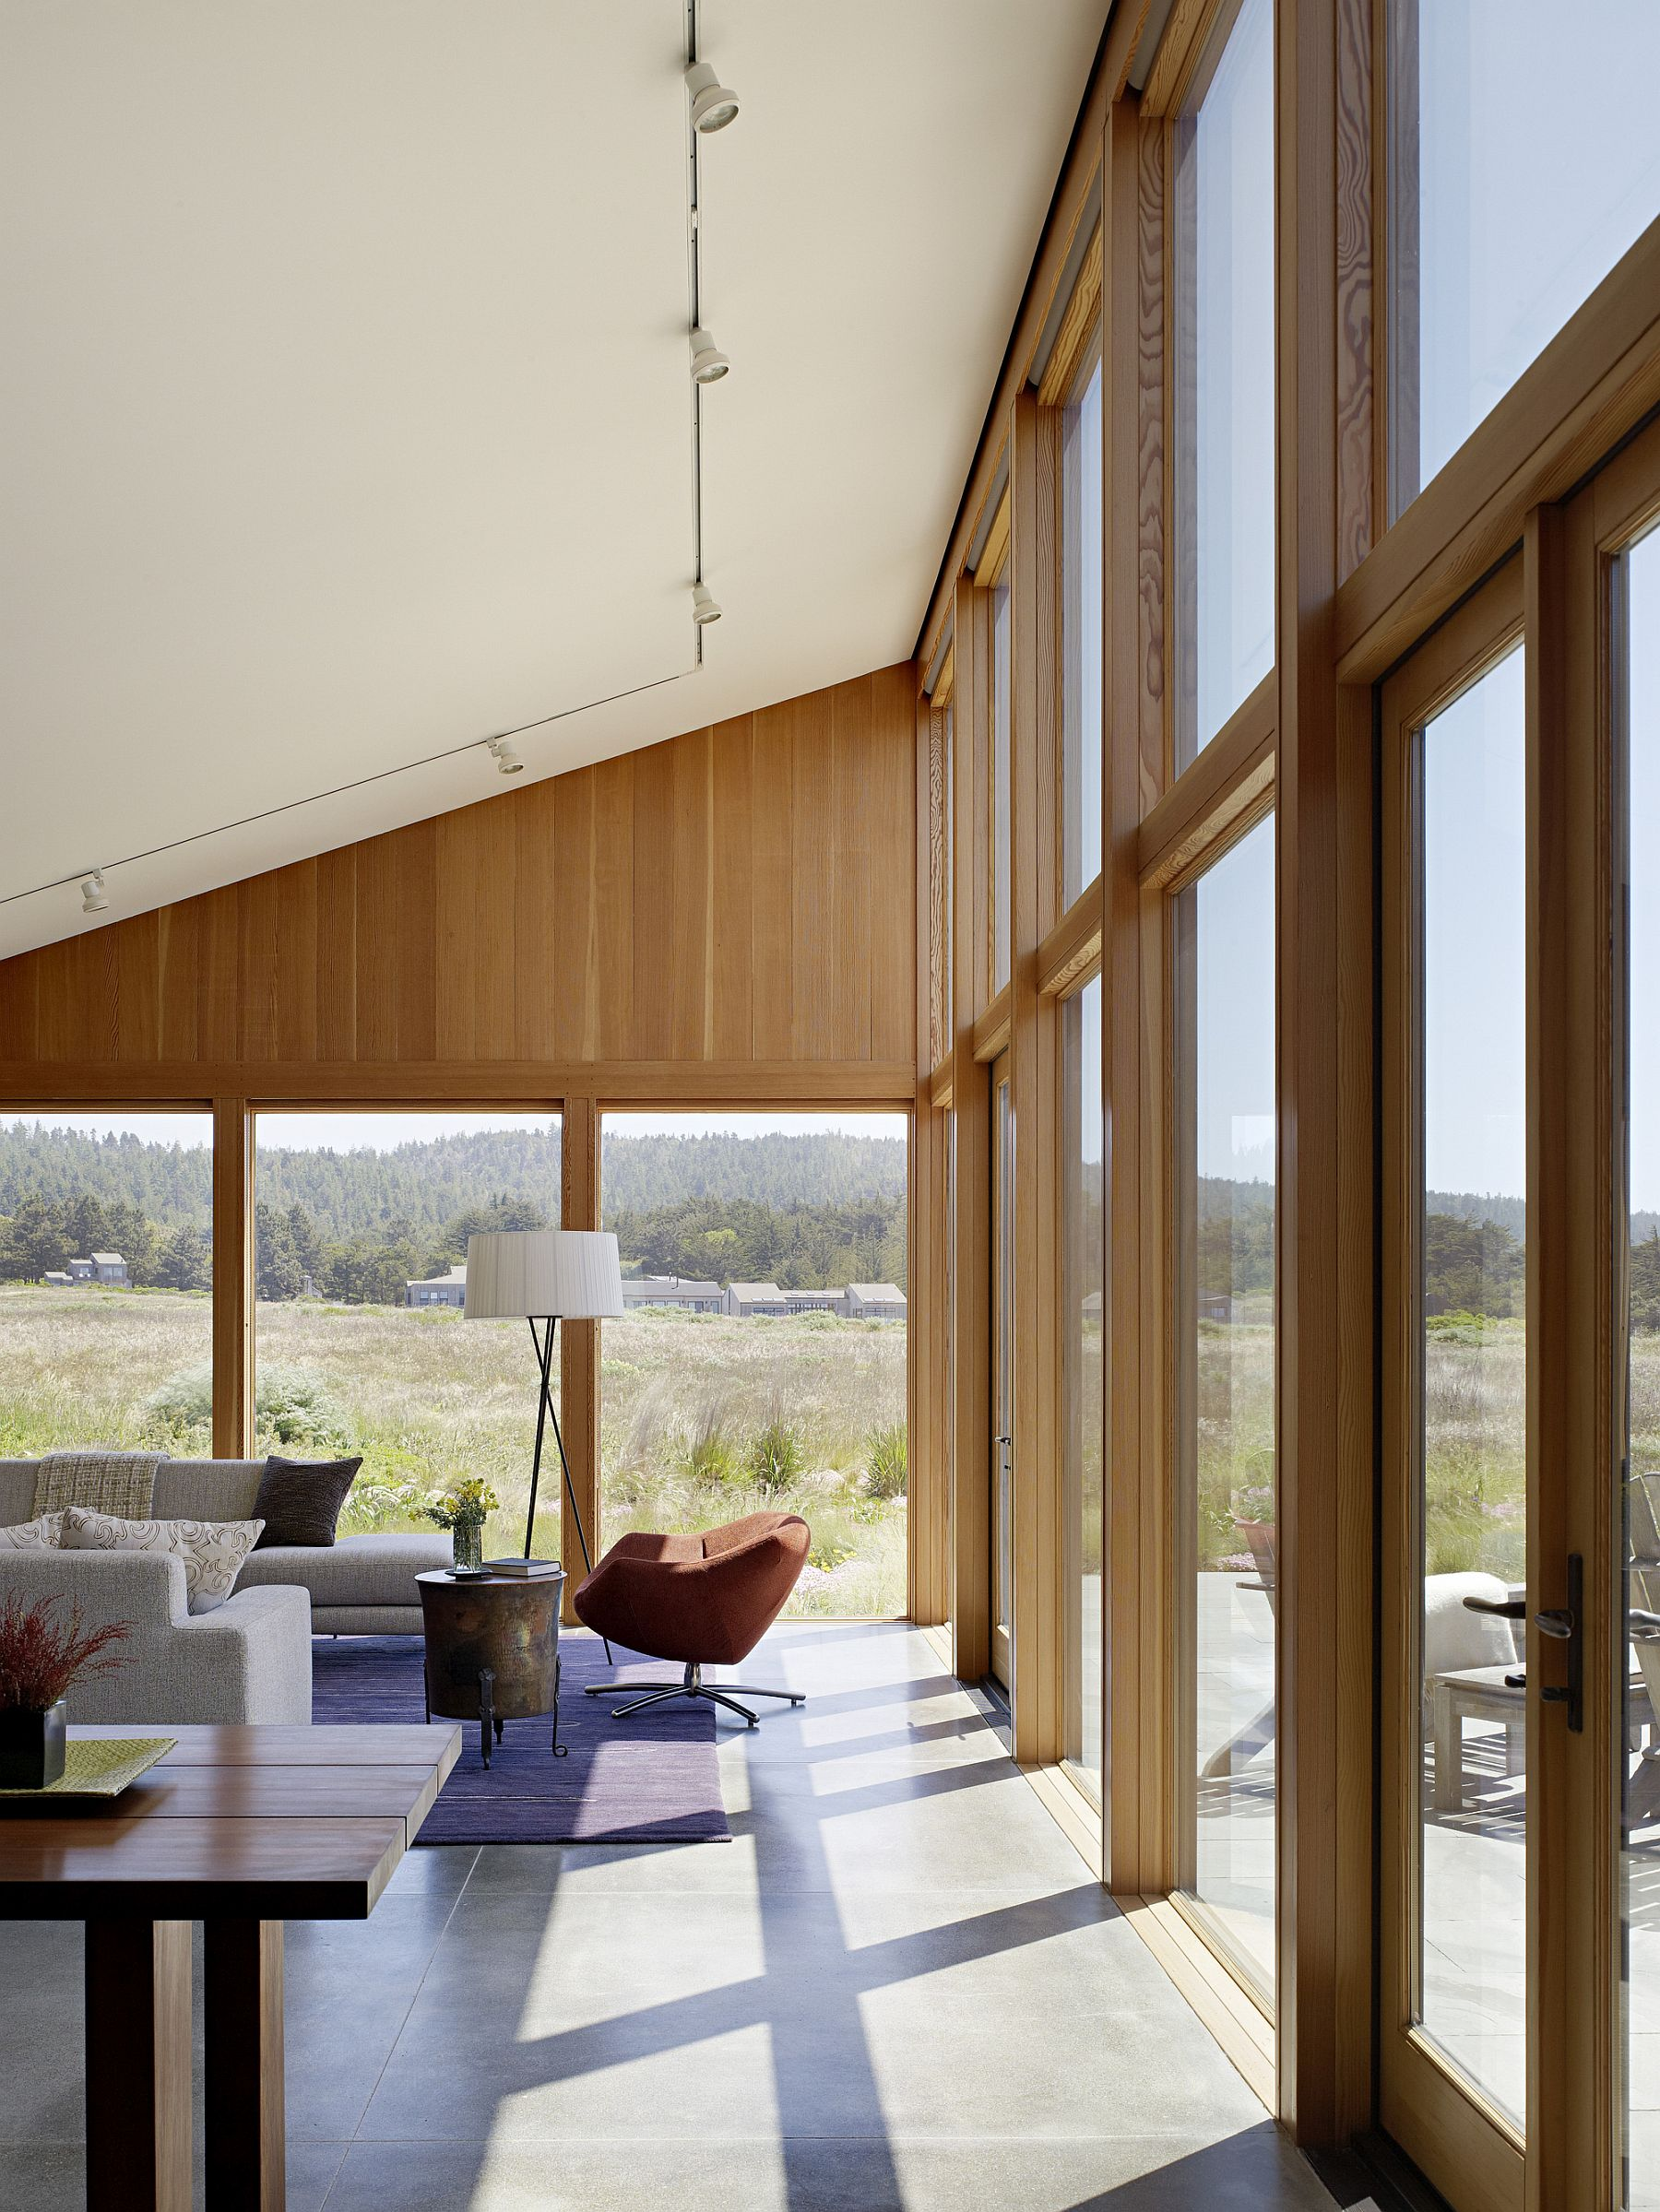 Large windows and glass doors connect the interior with the fabulous view outside